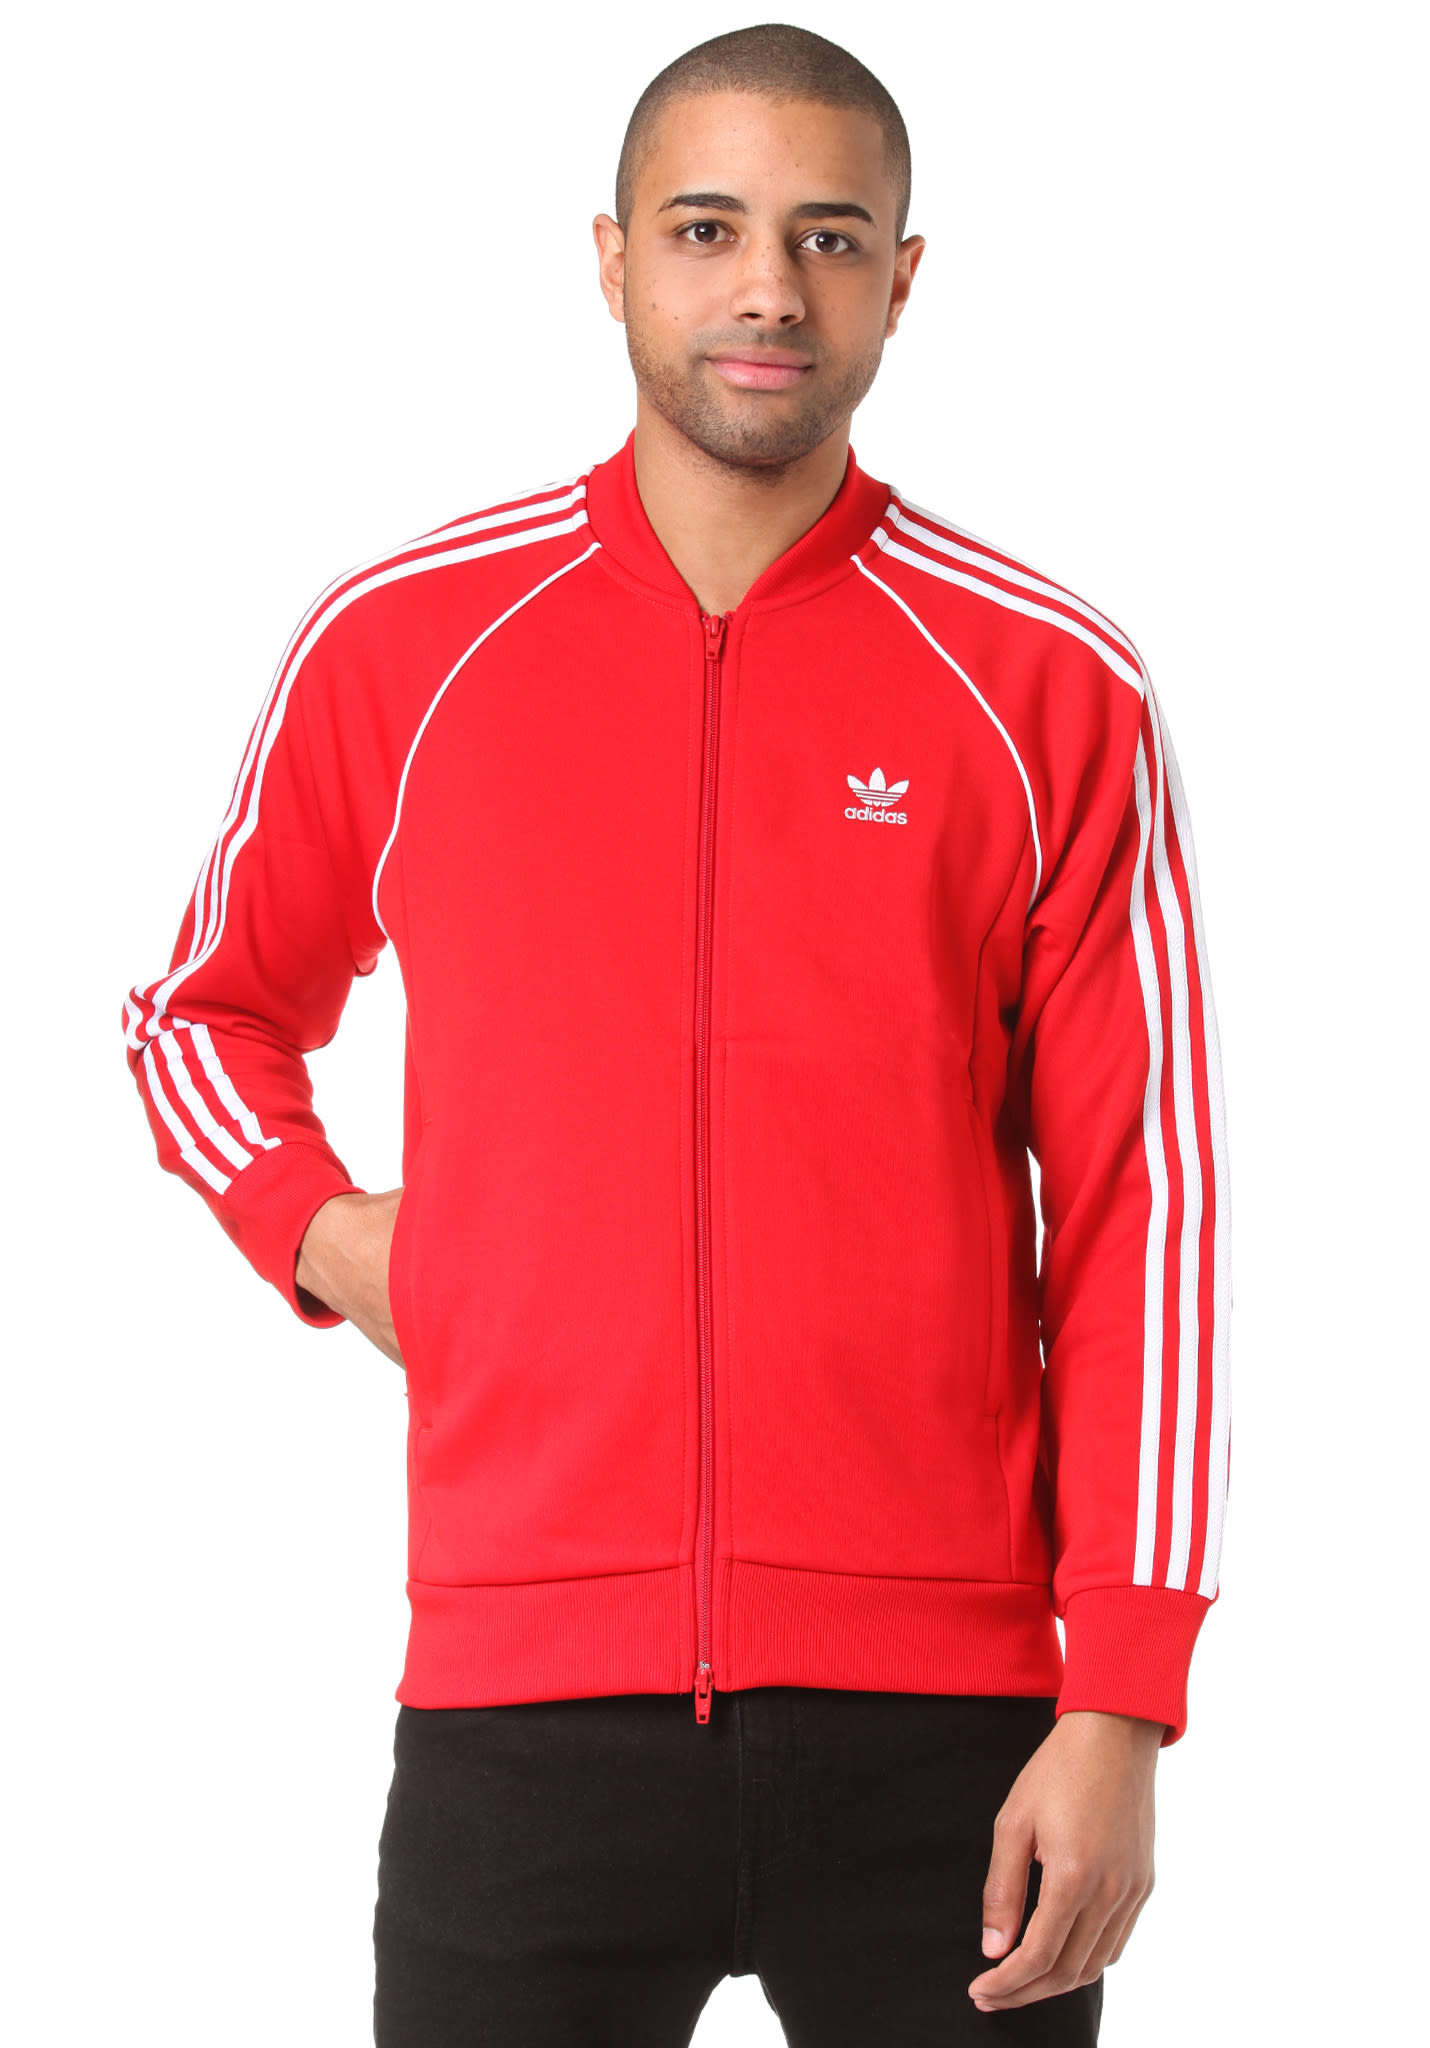 survetement sst adidas homme